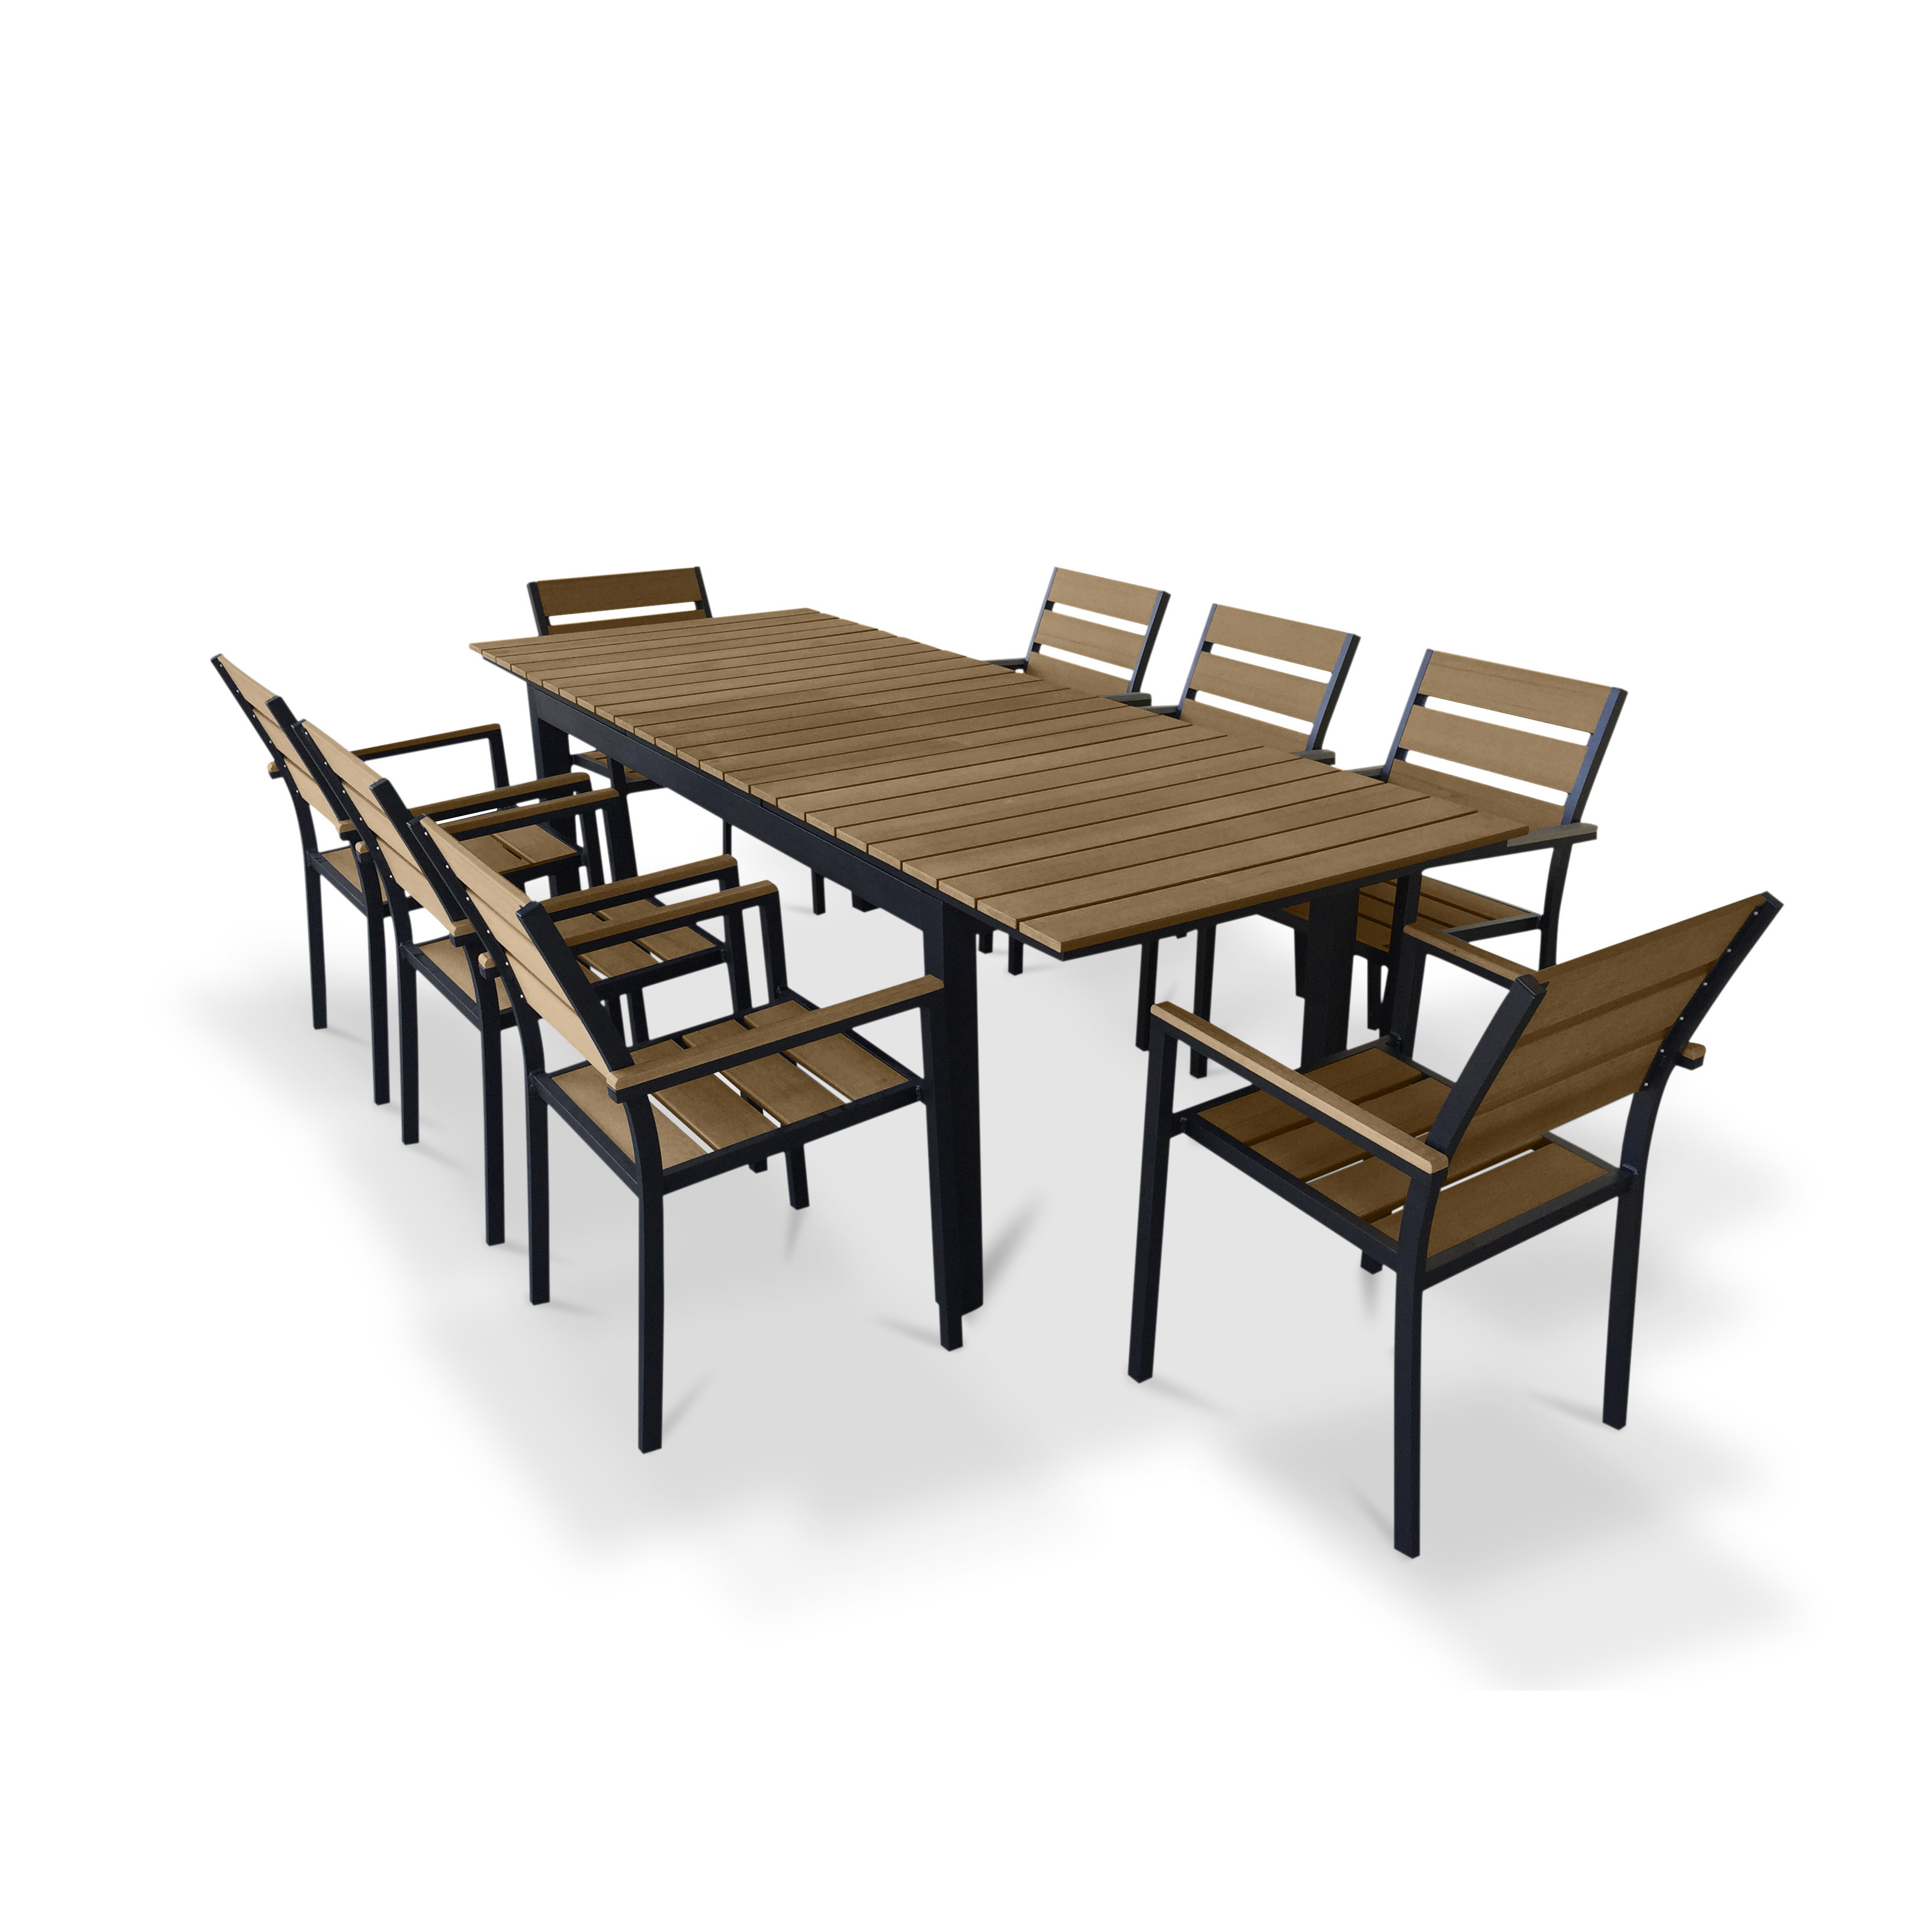 Best ideas about Patio Dining Set . Save or Pin Urban Furnishings 9 Piece Extendable Outdoor Dining Set Now.